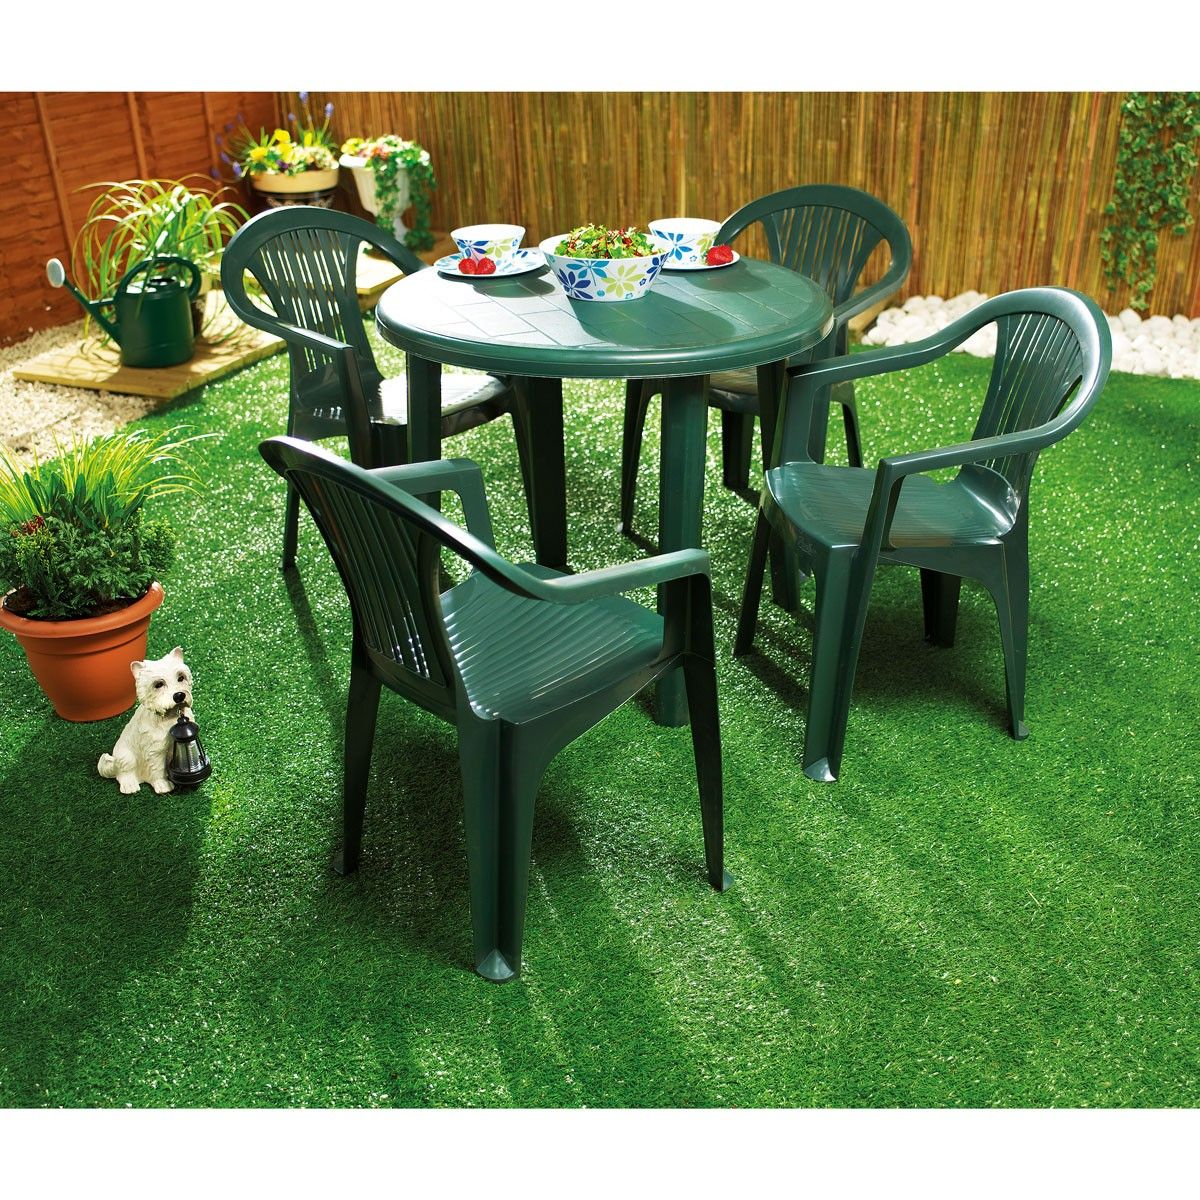 Green plastic garden table for home use backyard for Pvc patio table